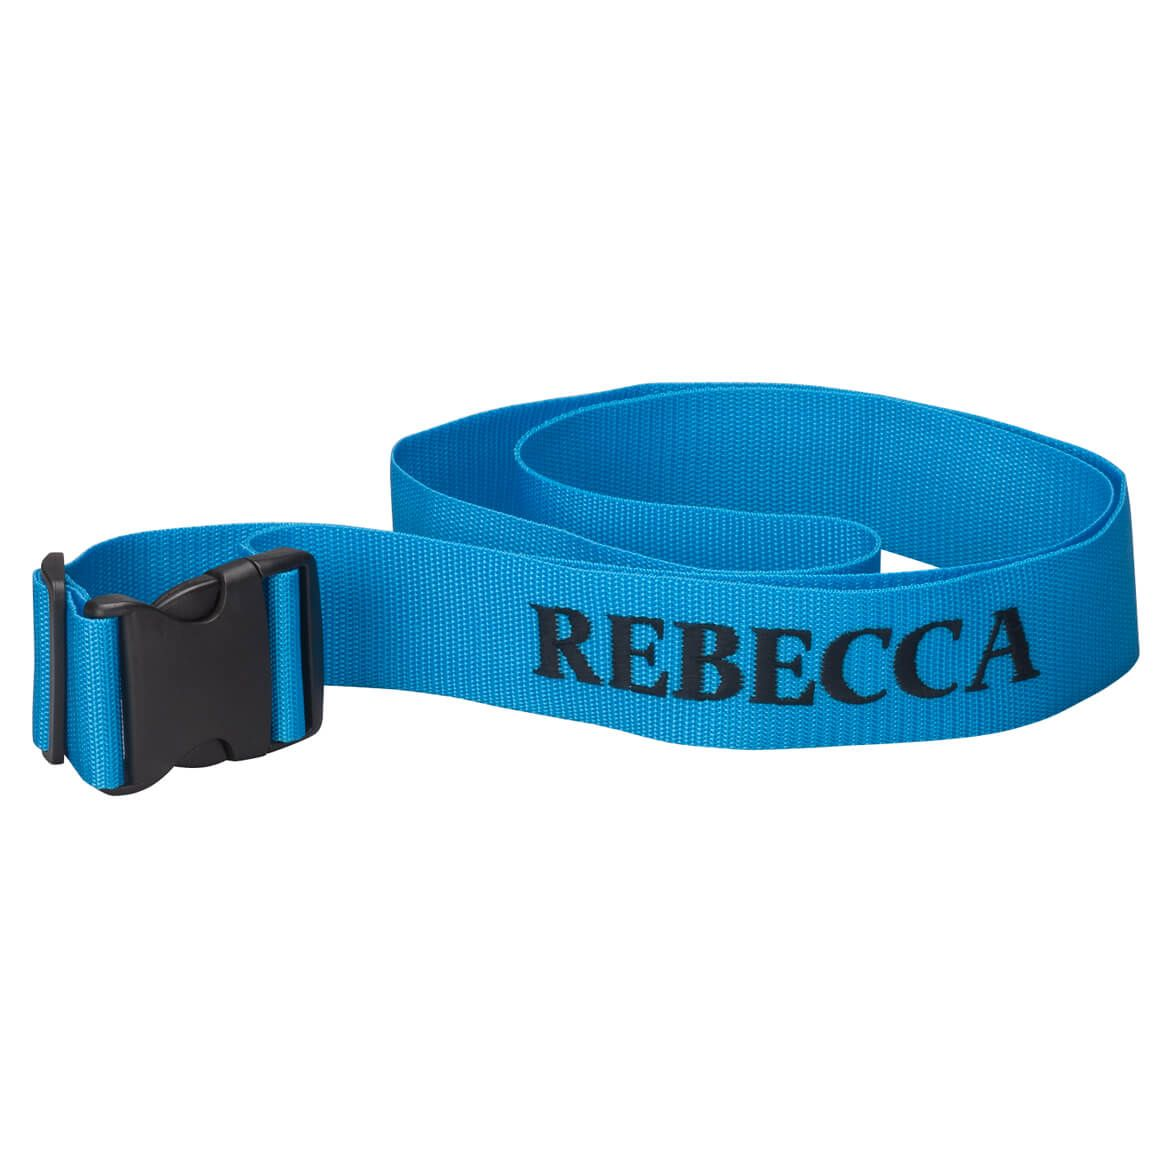 Personalized Blue Luggage Strap-360016